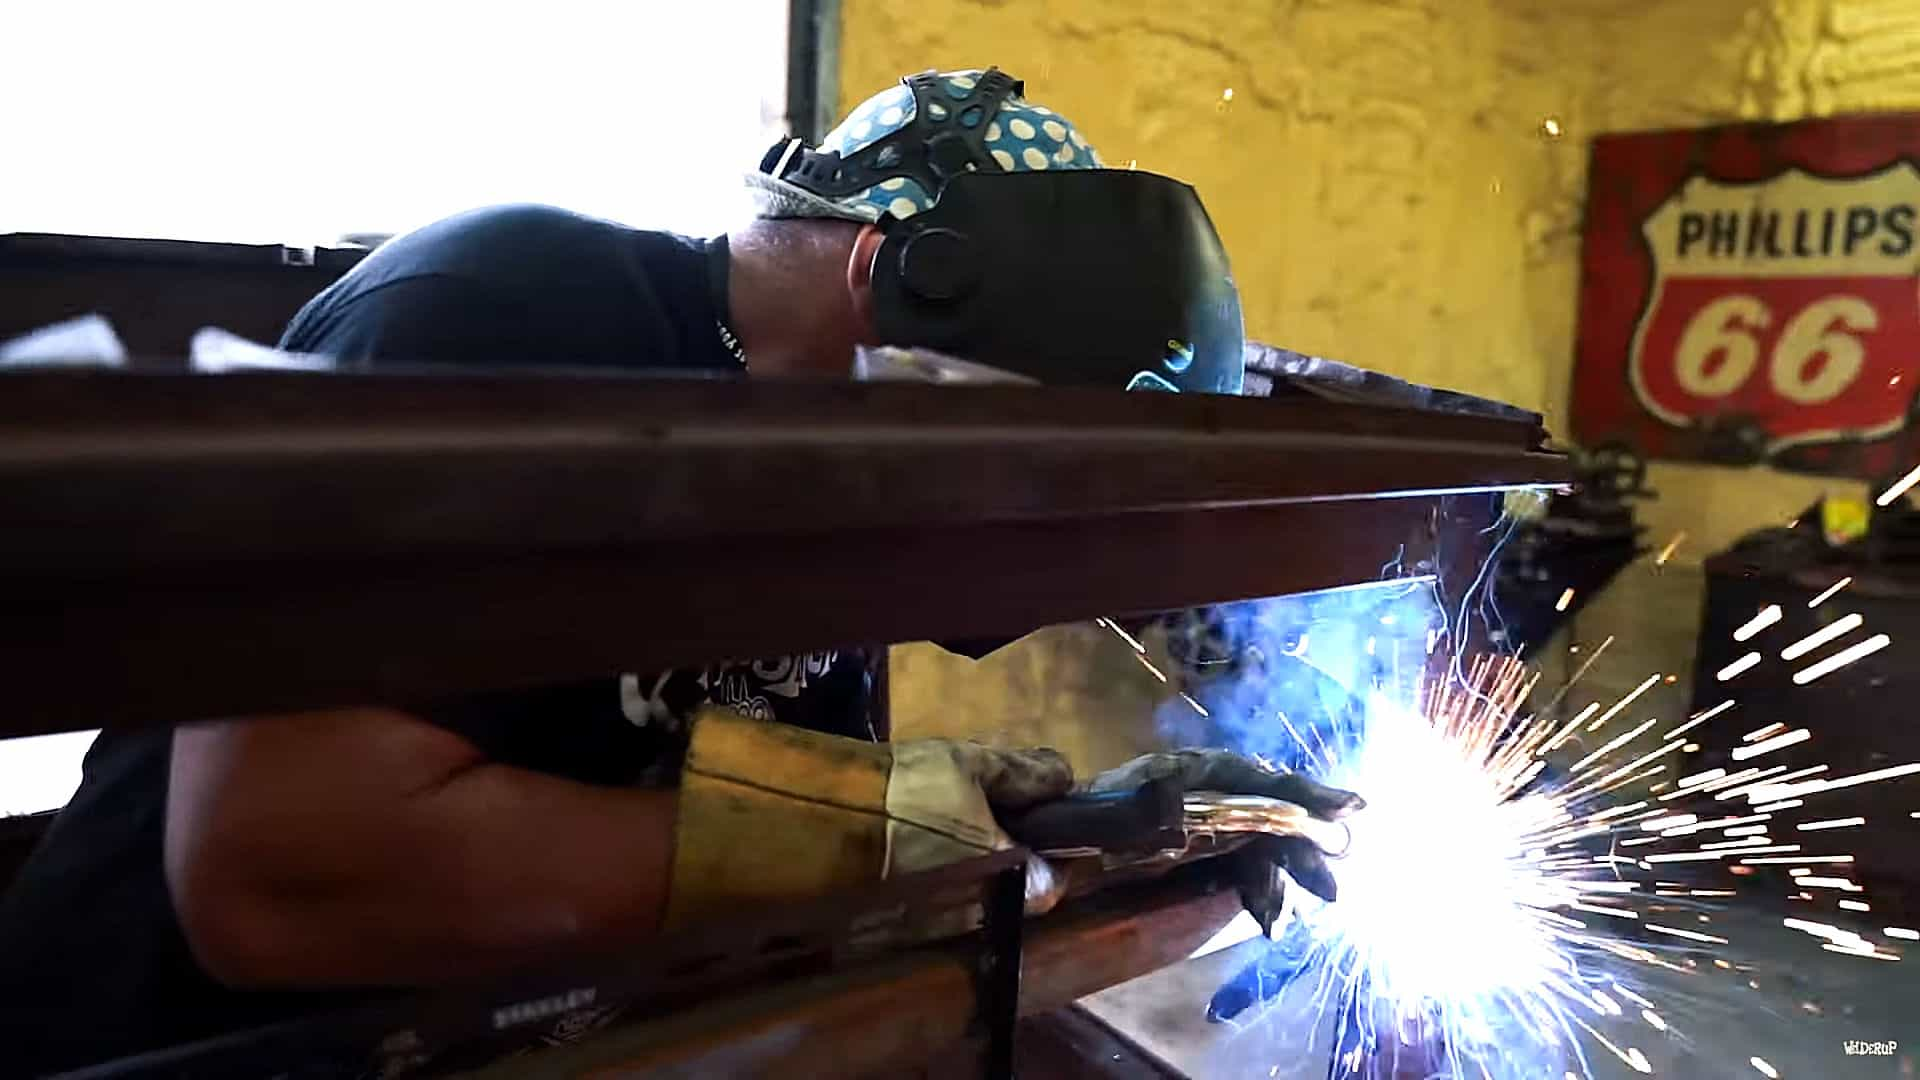 Making A TV Stand with WelderUp's Steve Darnell